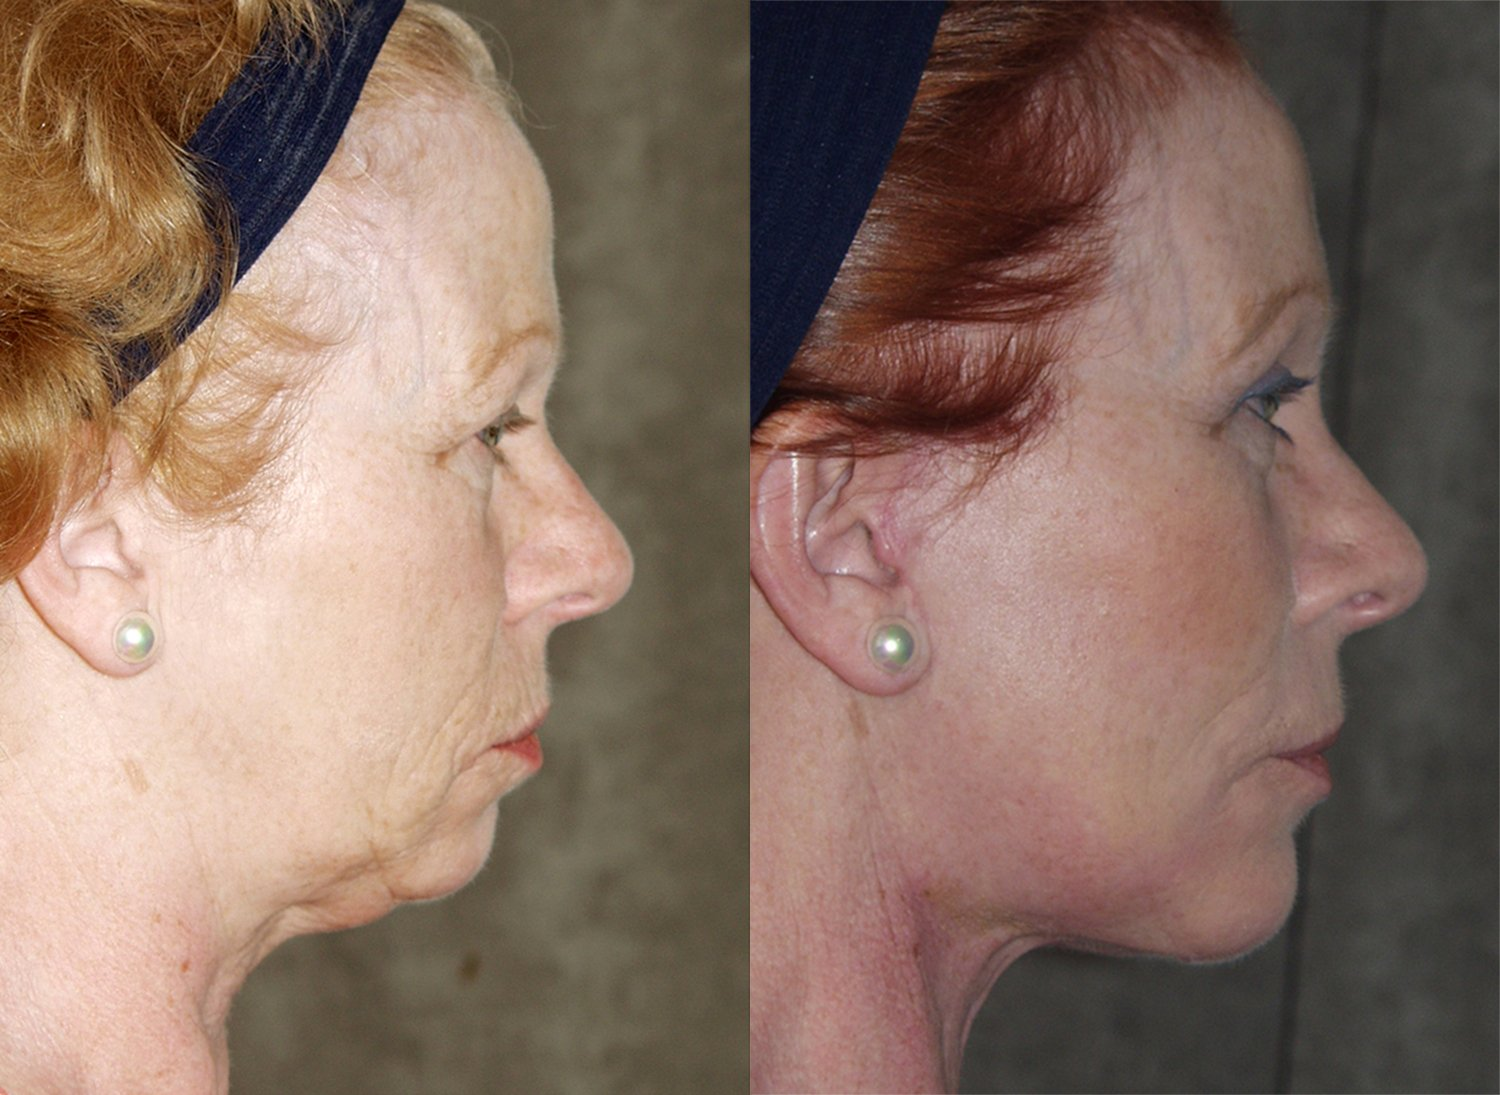 57-year-old facelift browlift upper & lower eyelids chin implant 6 months, side